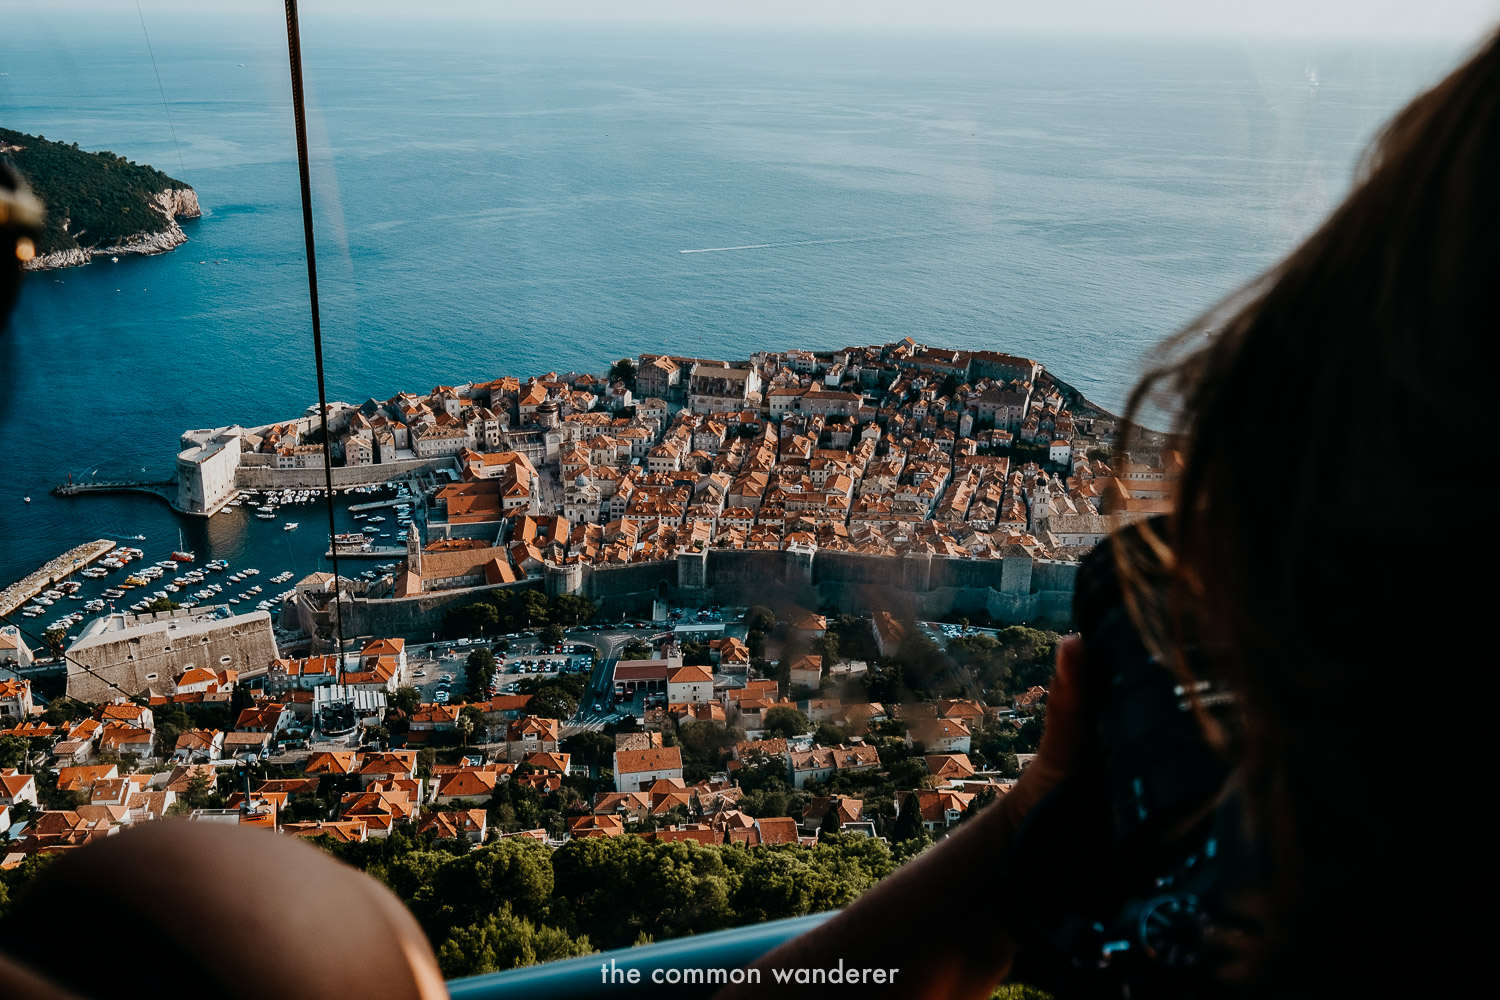 Catching the Mount Srd cable car in Dubrovnik